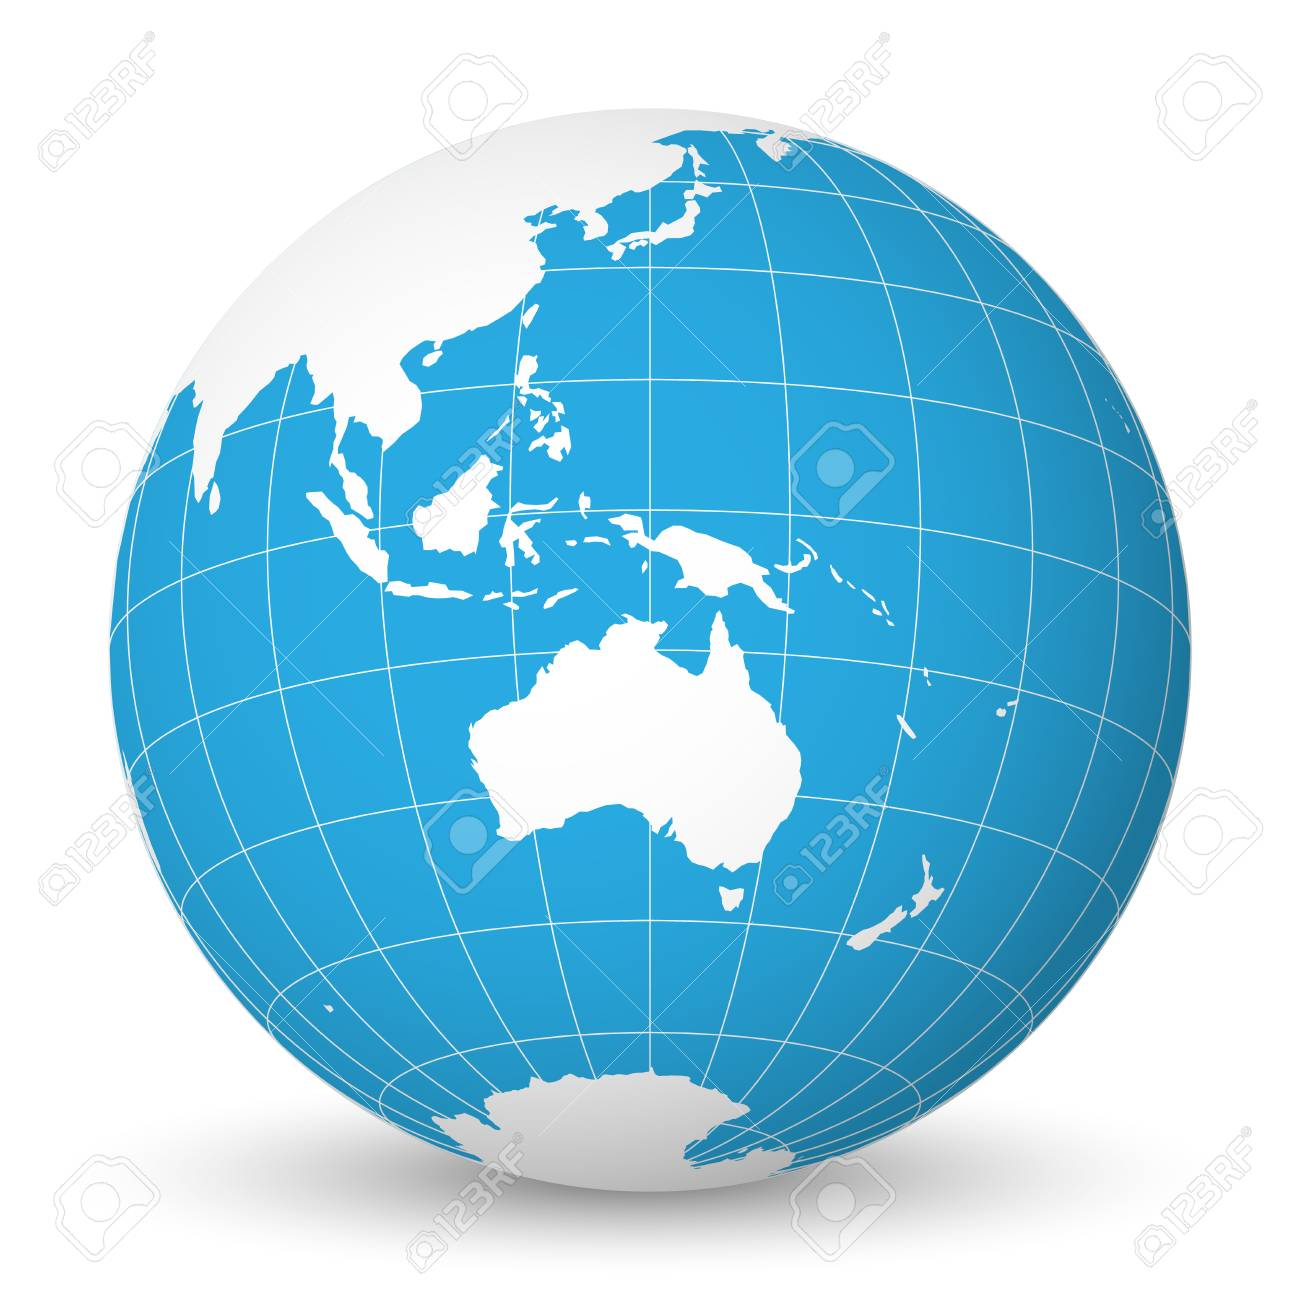 Australia Map Globe.Earth Globe With Green World Map And Blue Seas And Oceans Focused